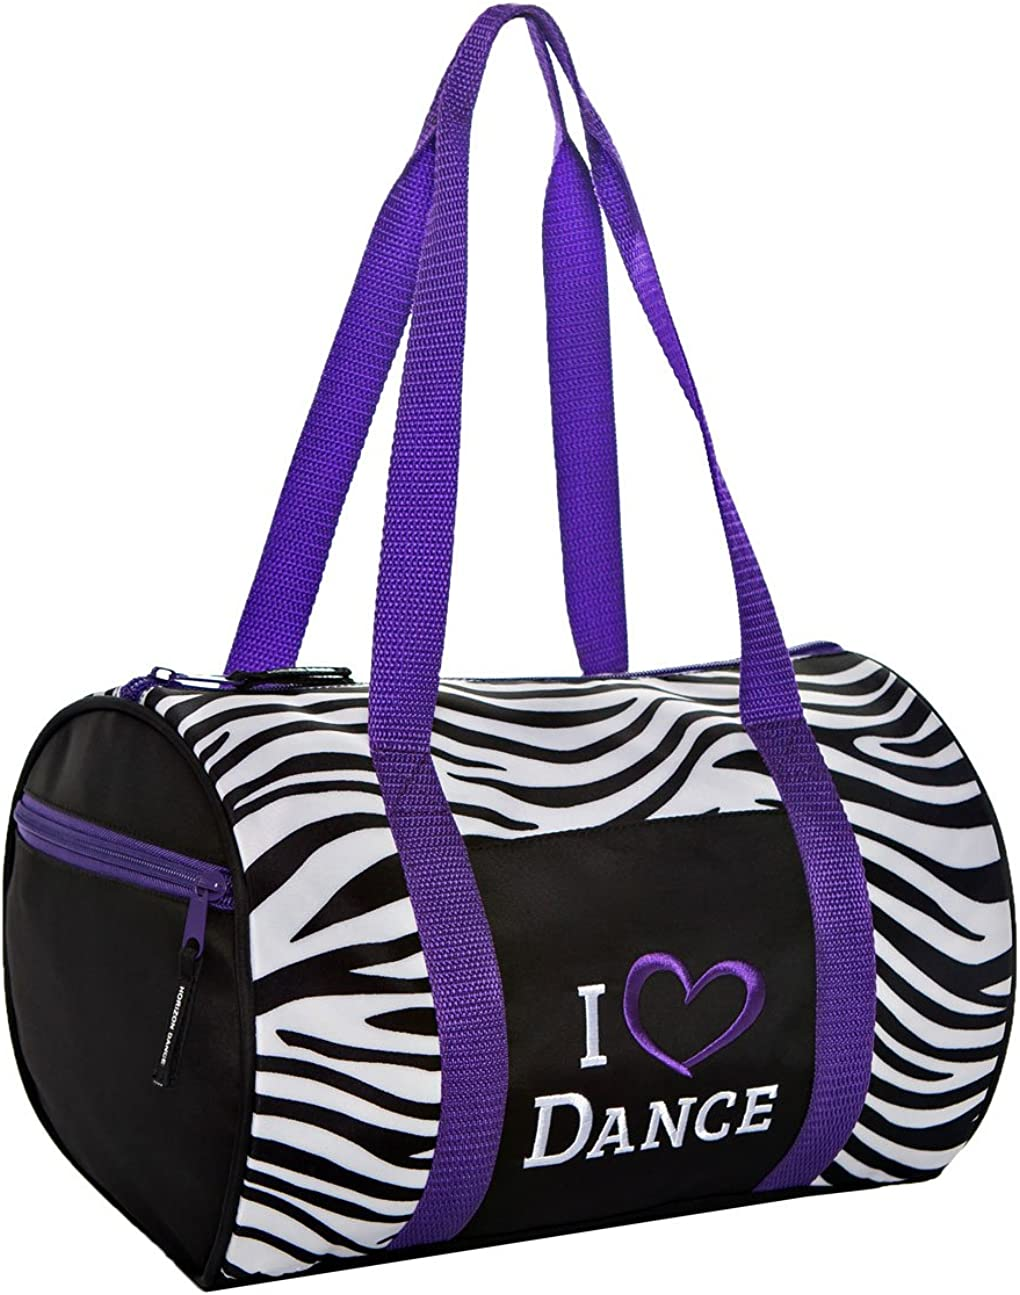 Pink Skull and Crossbones Zebra Design Sports Bag